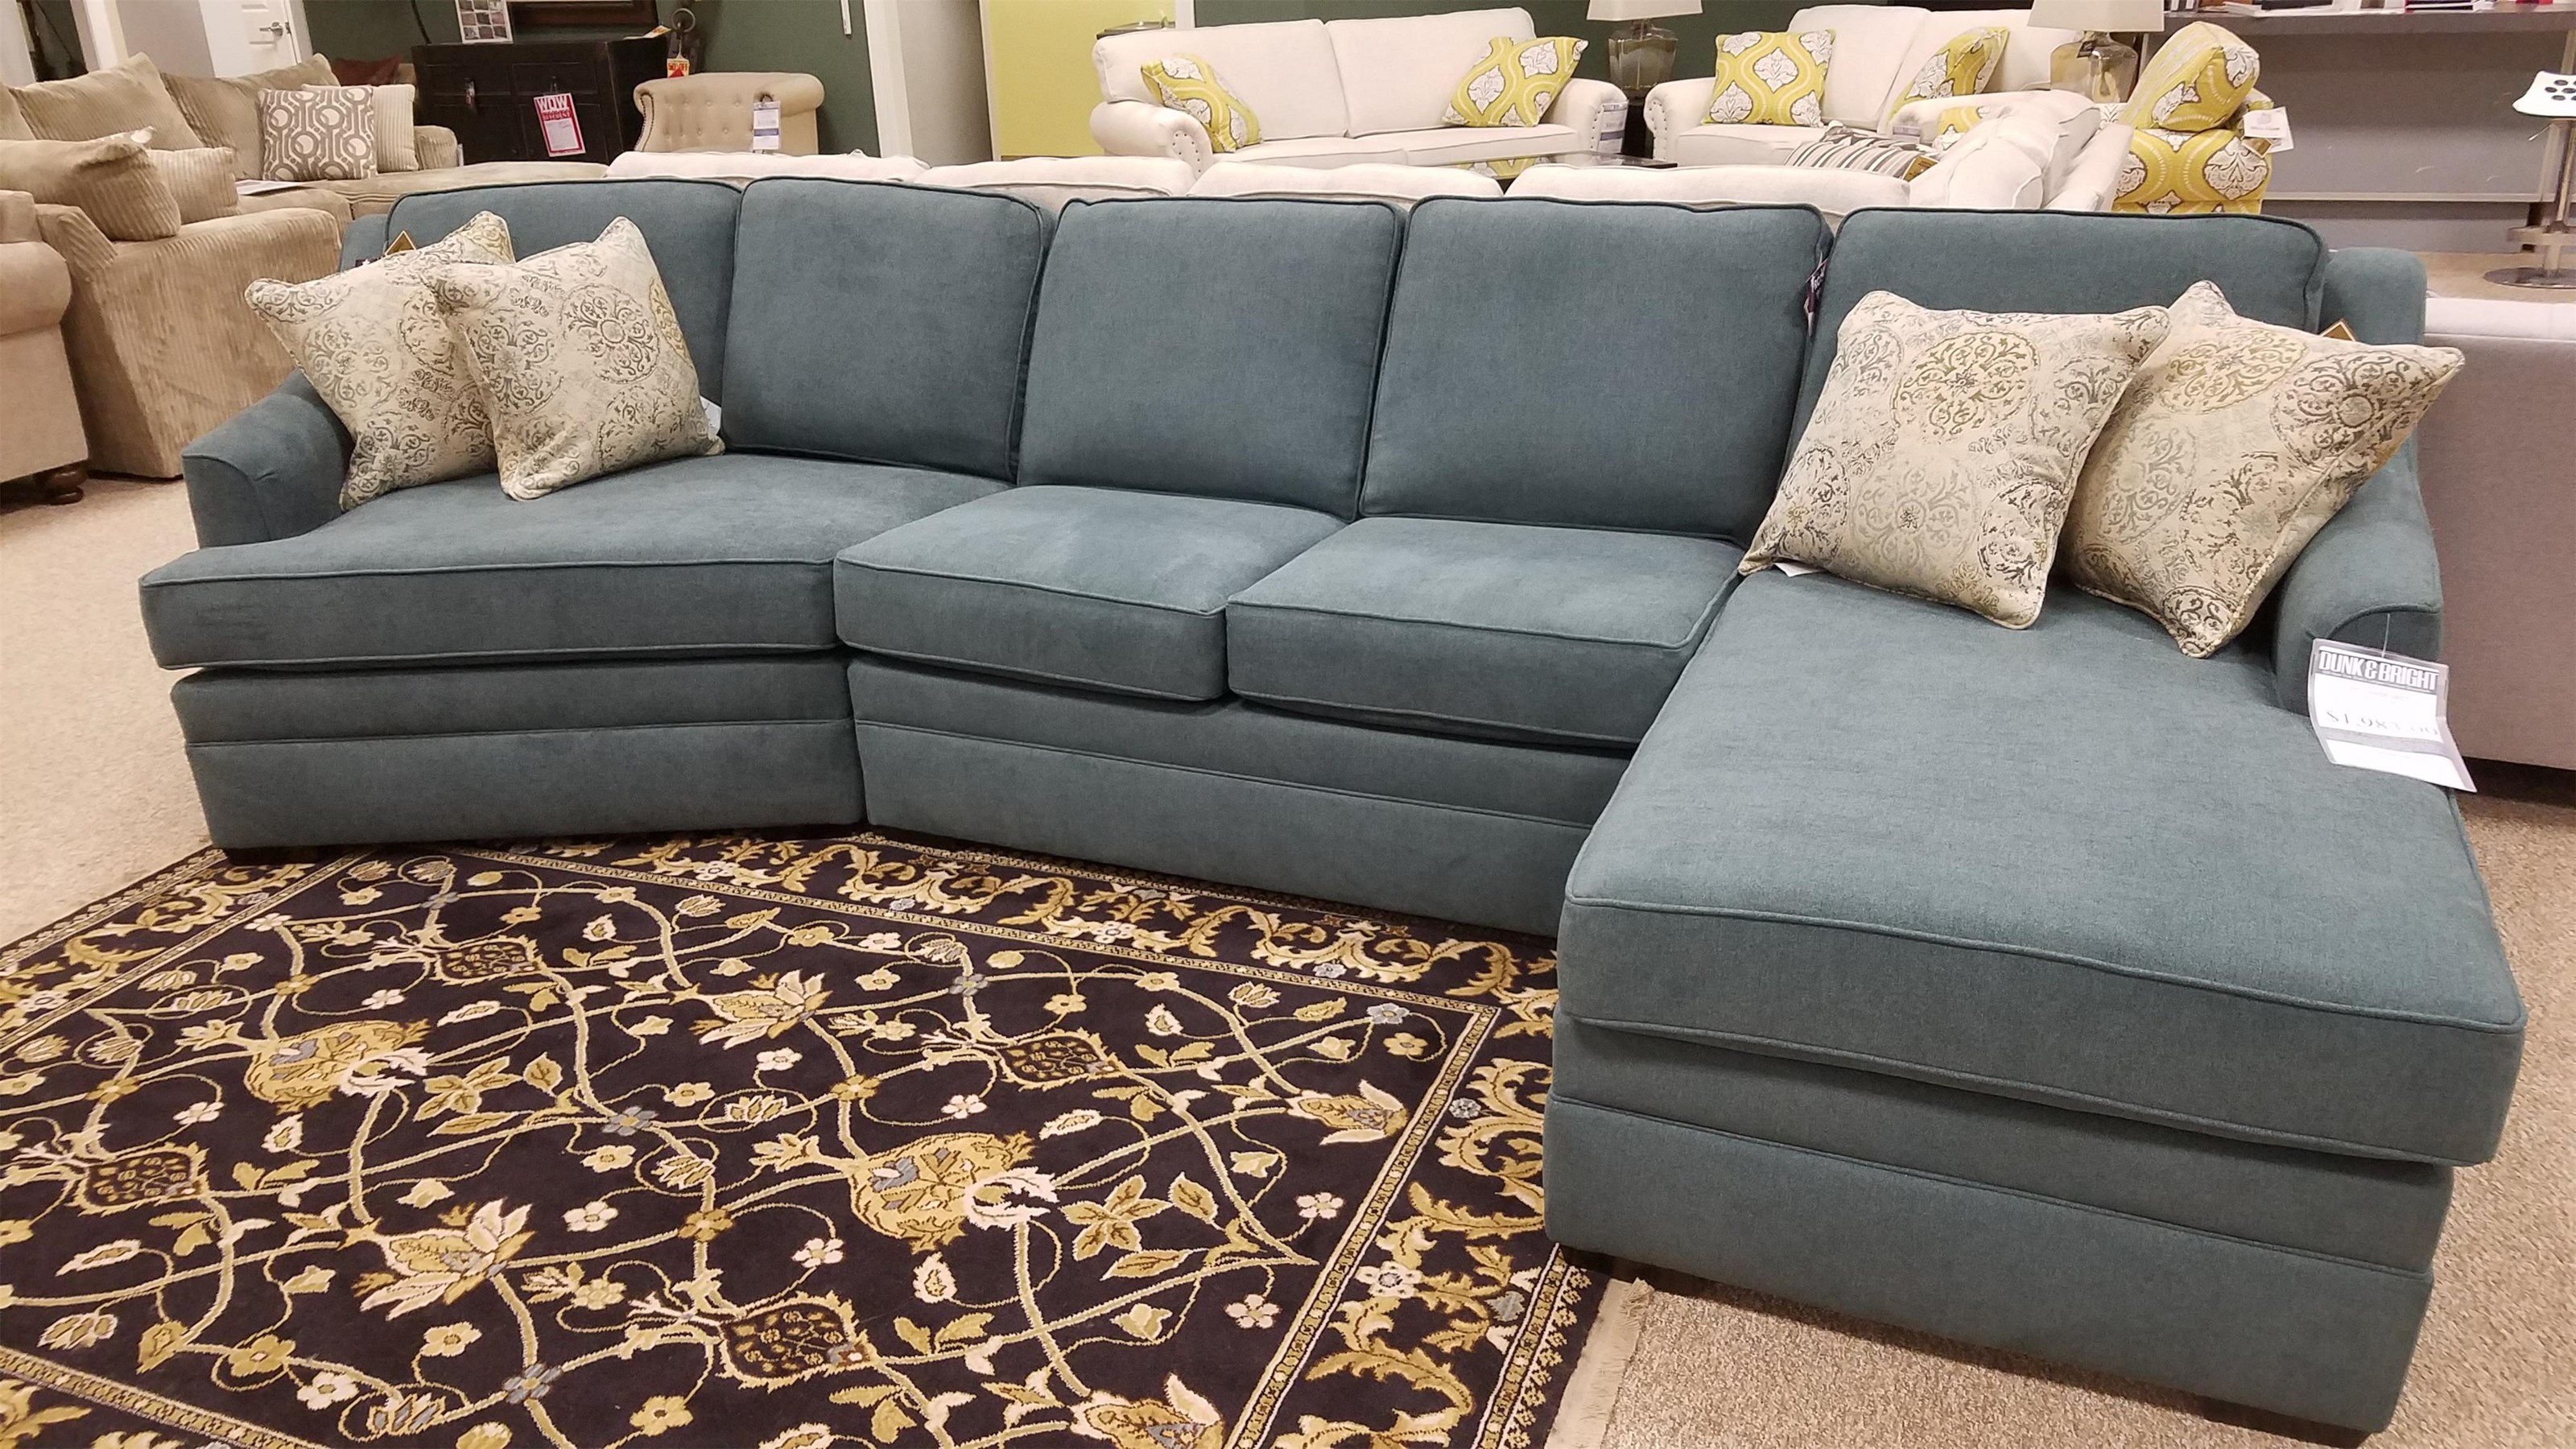 fantastic home boy chaise with sectional lovable excellent scale centerectional full lazy small outstanding your remodel of for sofa literarywondrousofasith plans pictures size queen elegant impressive design cuddler about and ideastylish chaiserofa sofas armless inspirations photos